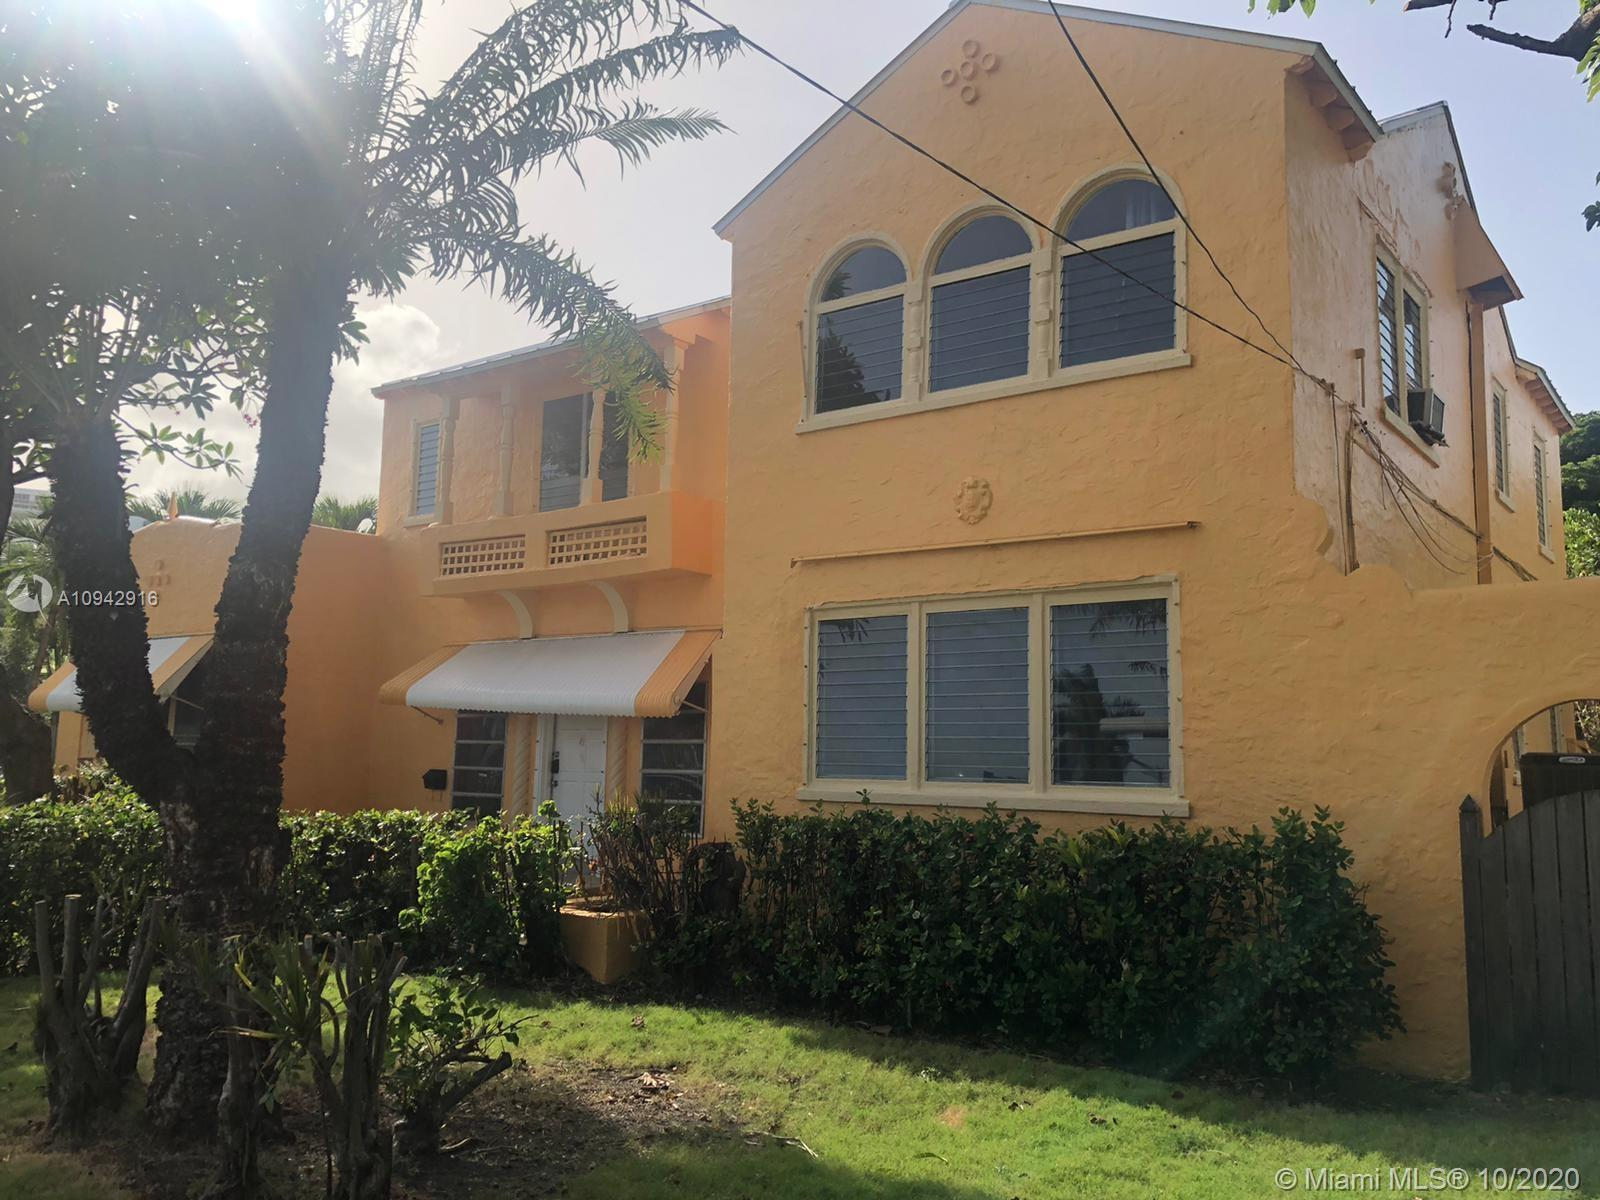 *BEST VALUE ALONG ALTON ROAD* Unique opportunity to purchase and renovate this home and turn it into